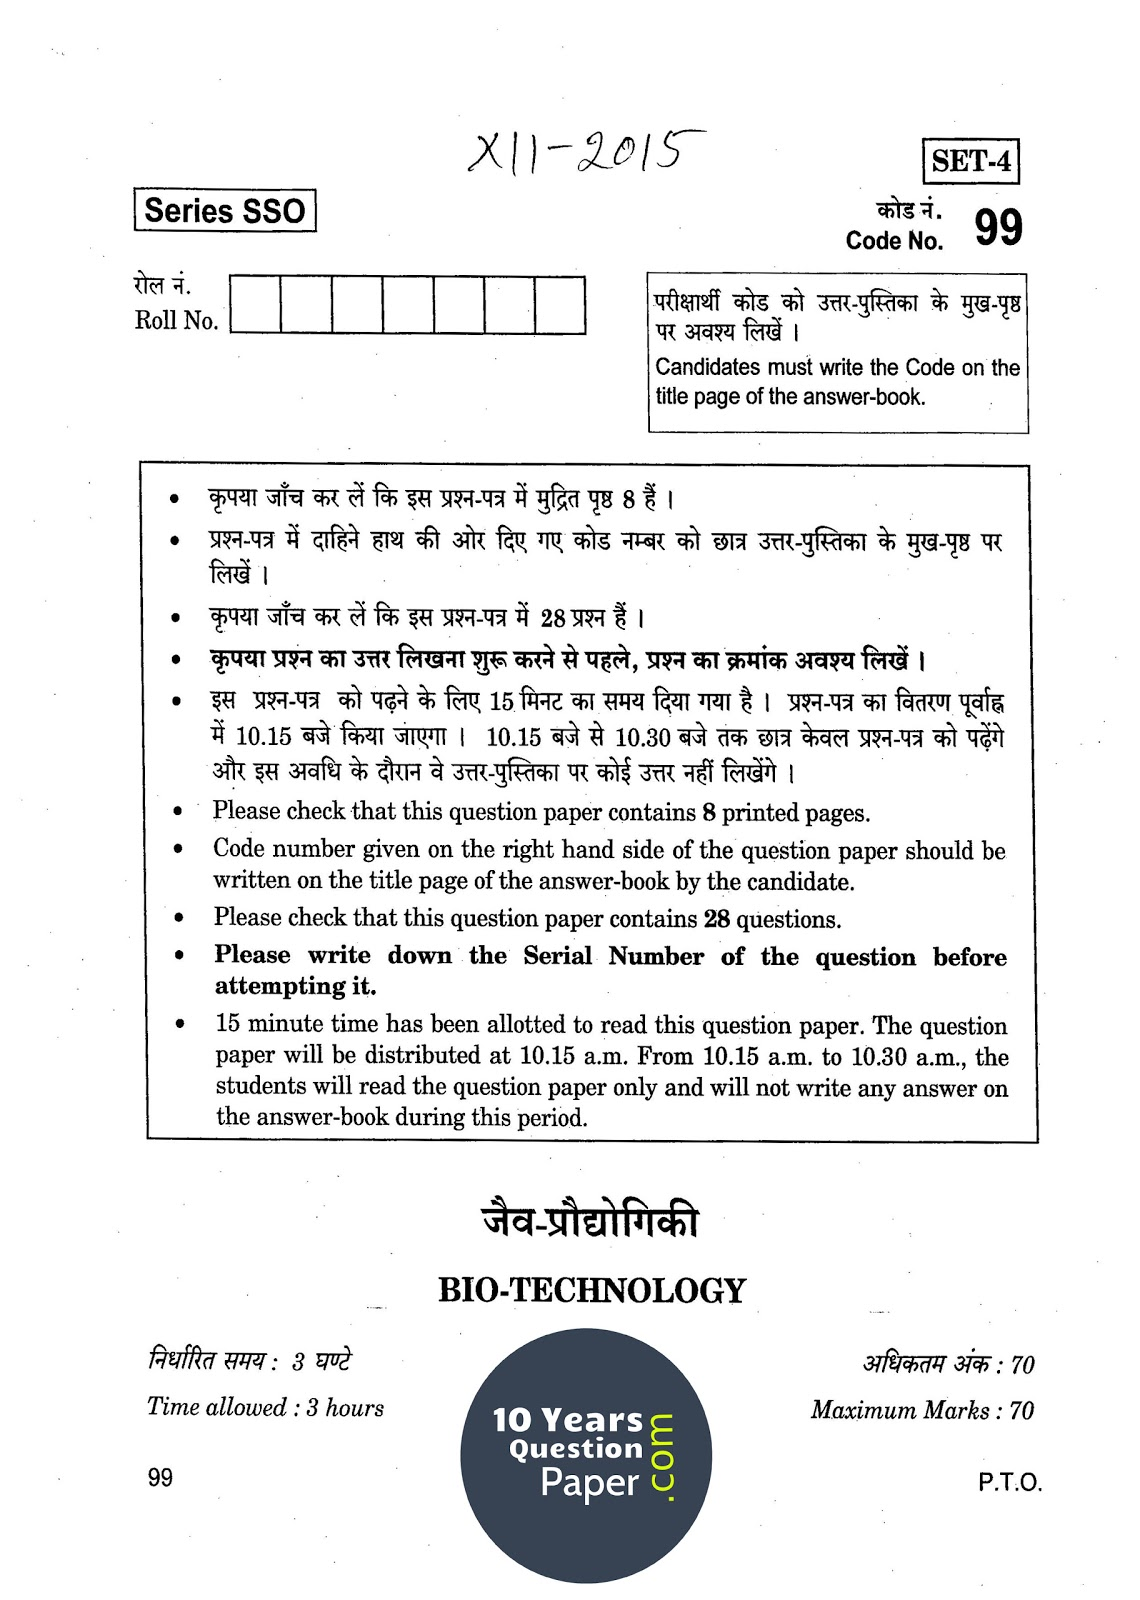 cbse class 12th 2015 Biotechnology question paper